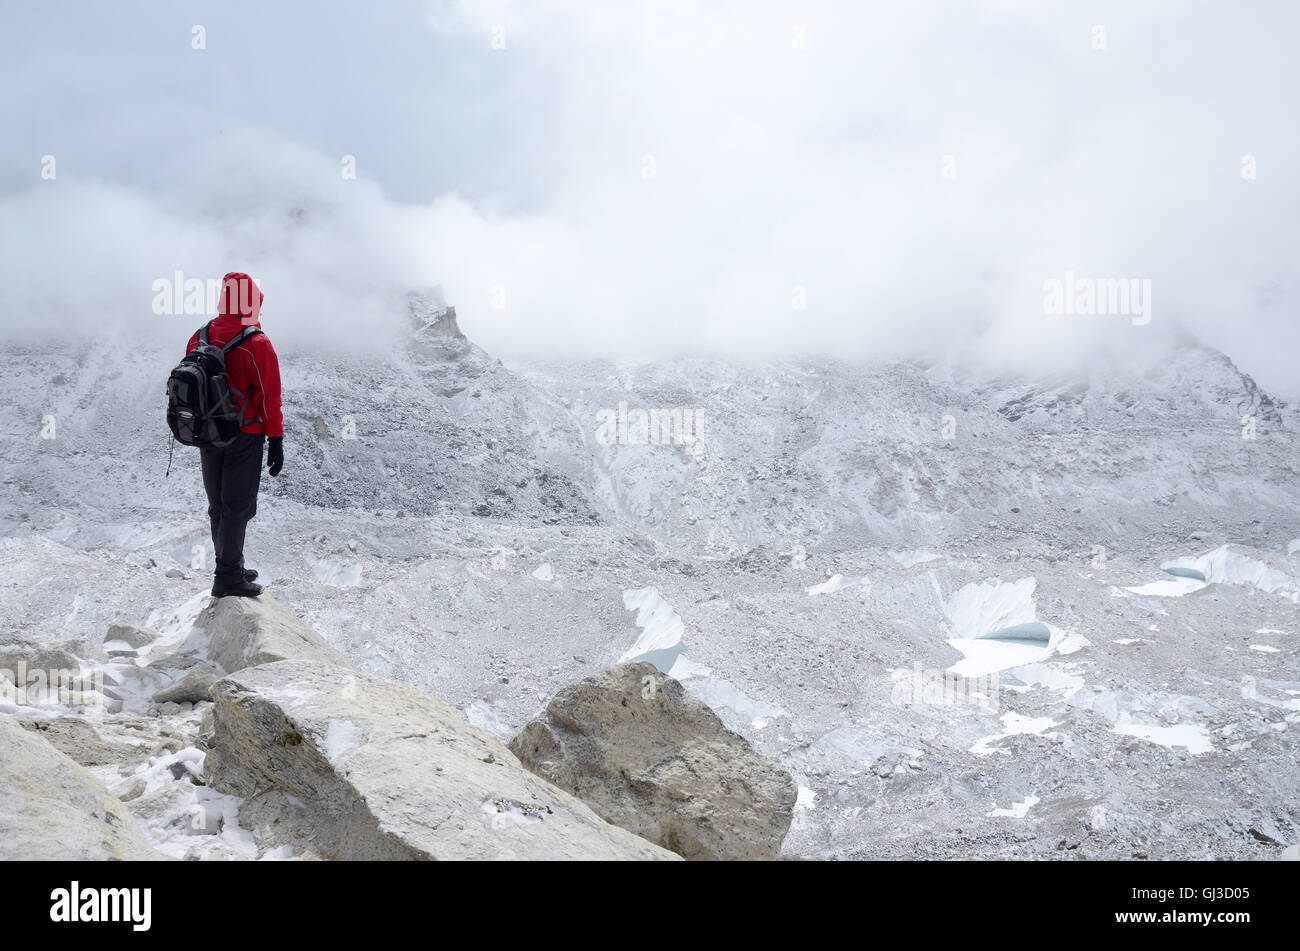 Mountaineer standing near Khumbu Icefall - one of the most dangerous stages of the South Col route to Everest's - Stock Image